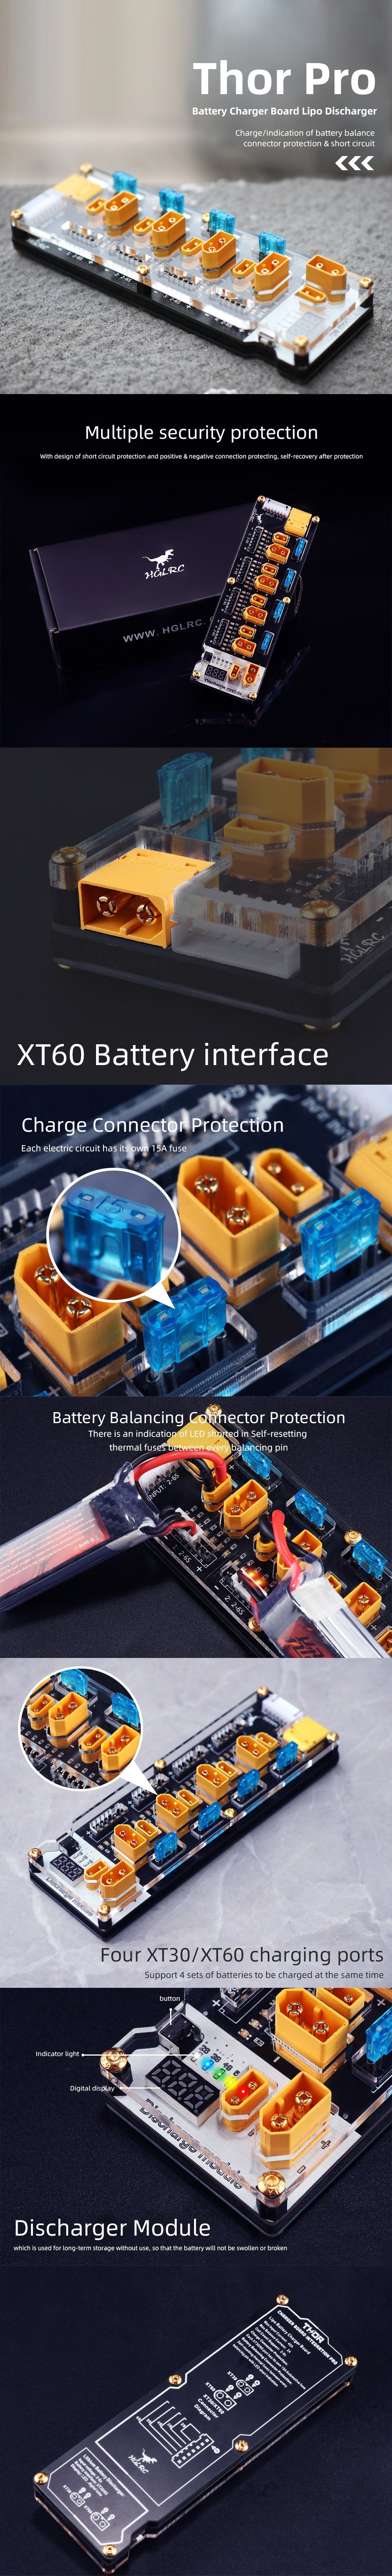 HGLRC Thor Pro LiPo Parallel Balance Charging Board - XT30 and XT60 Safety Features and Specifications